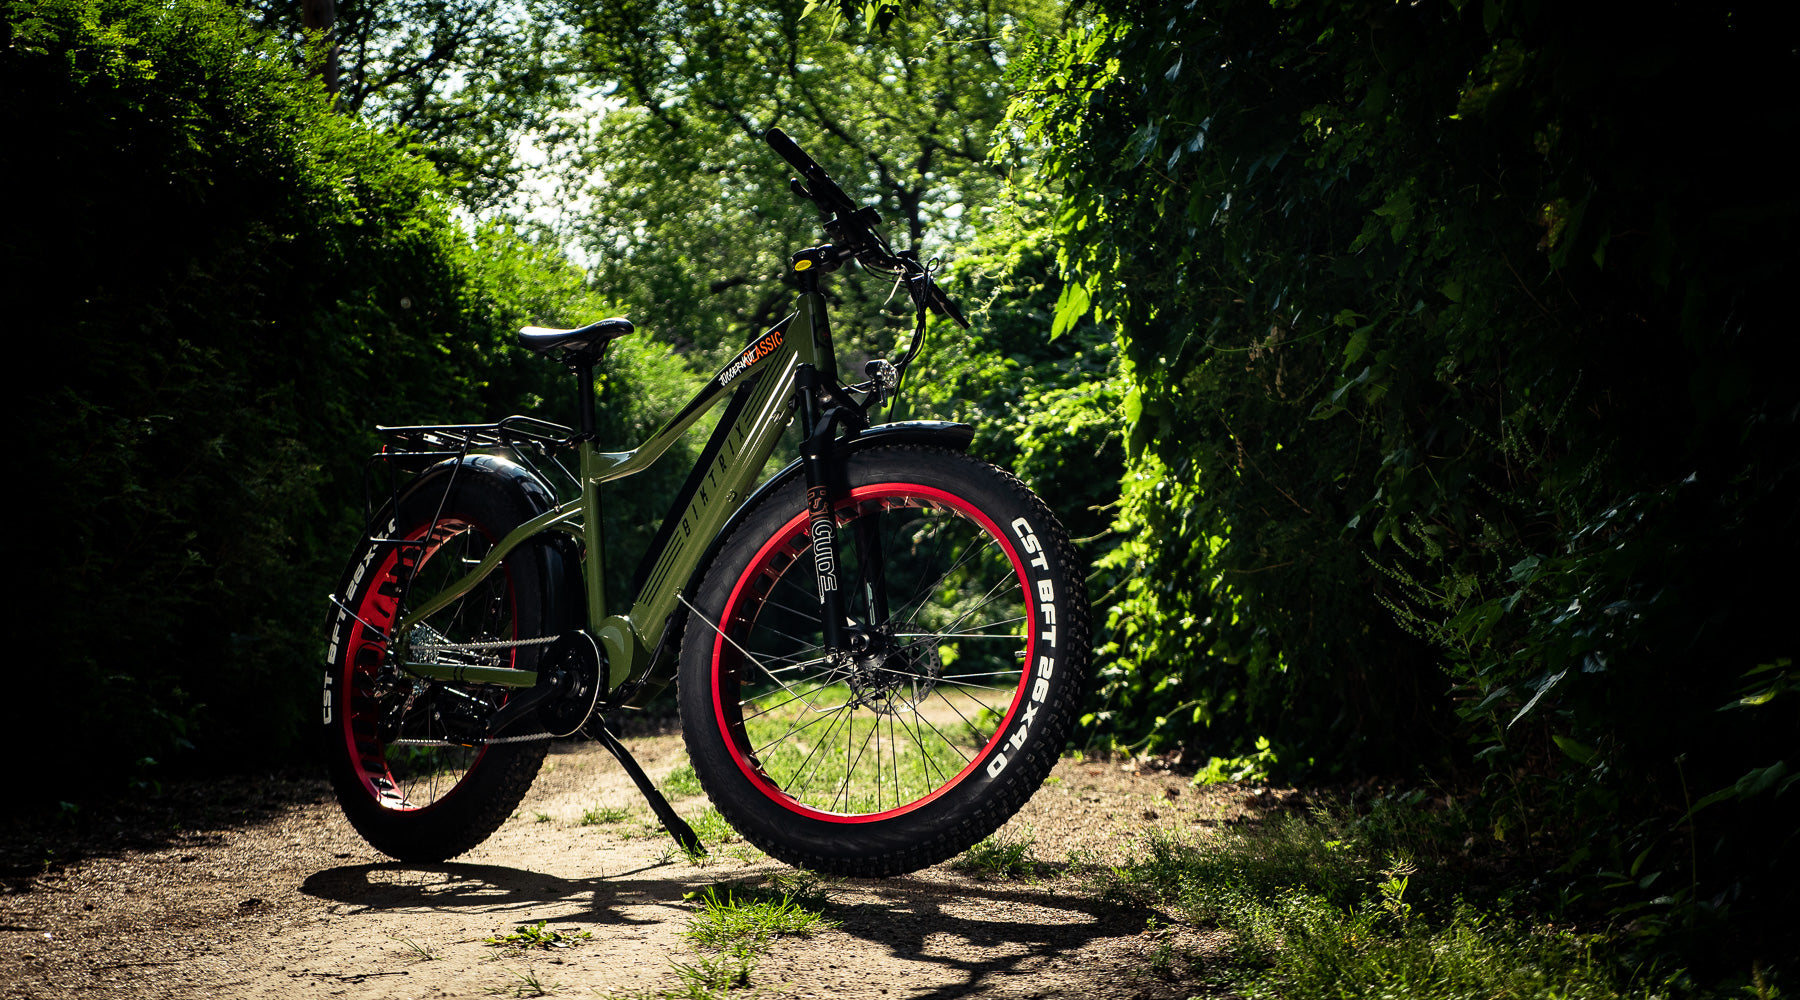 THE JUGGERNAUT CLASSIC ELECTRIC MOUNTAIN BIKE